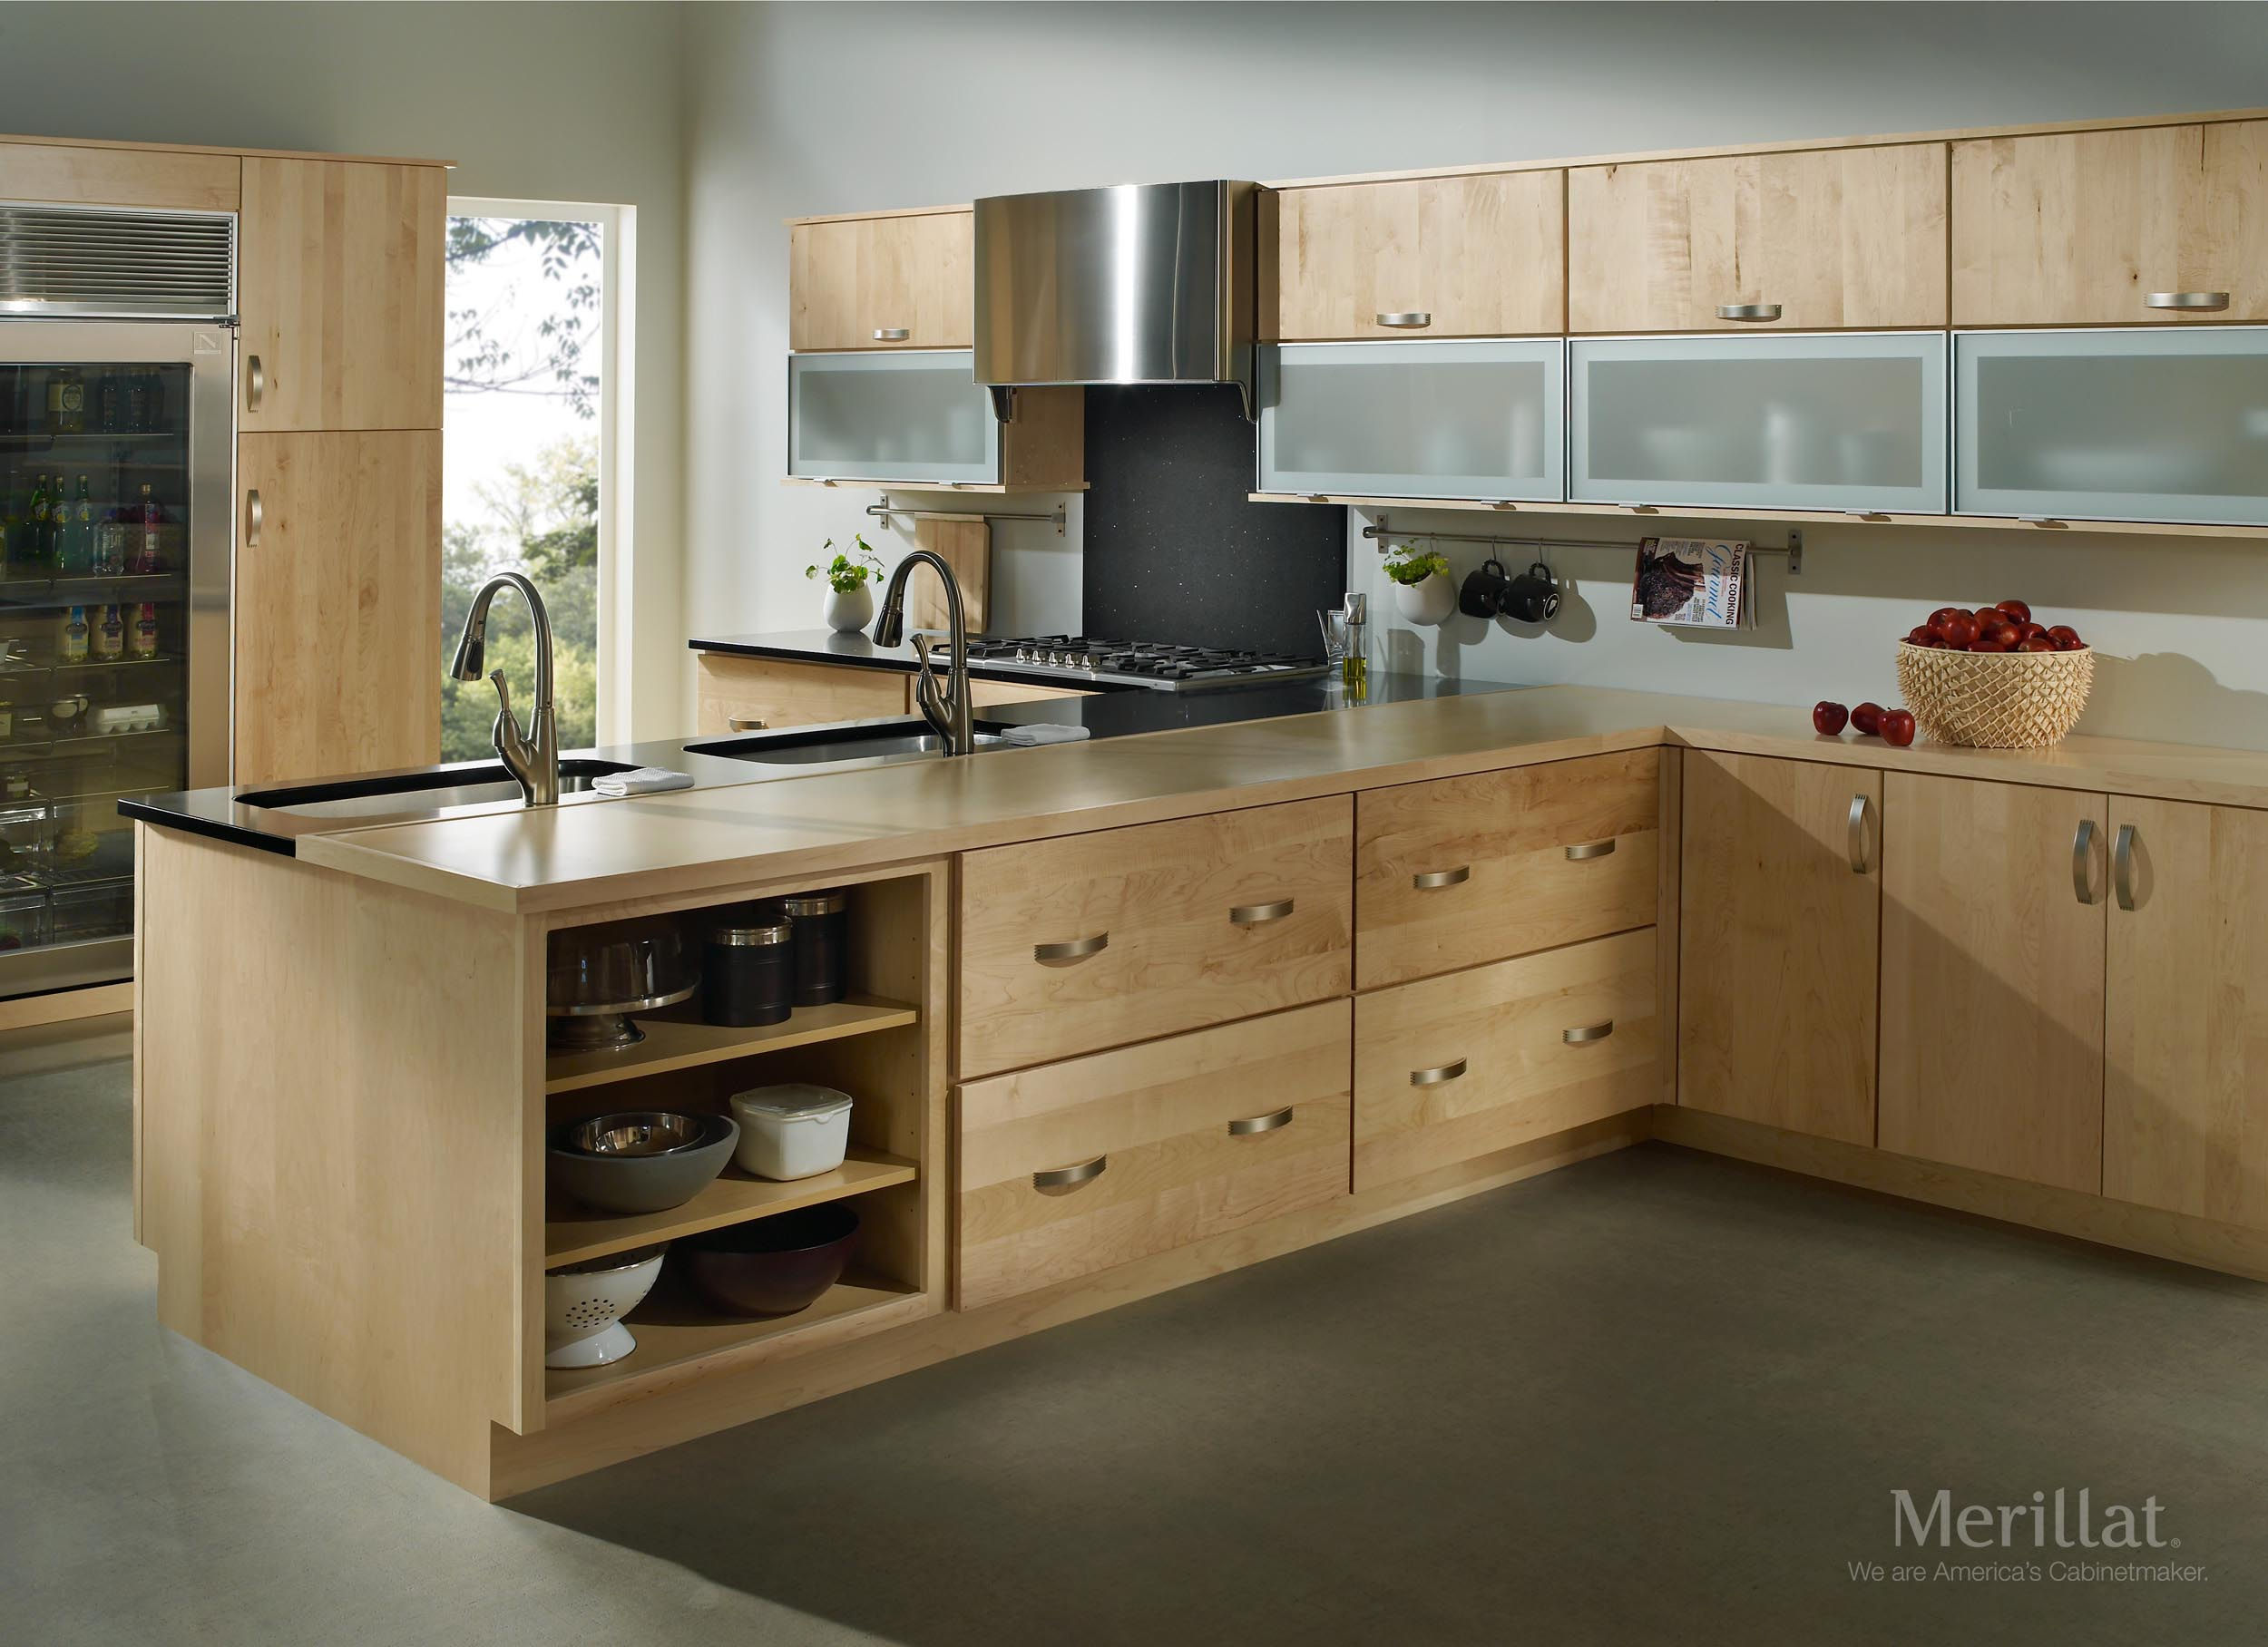 Merillat masterpiece epic in maple natura for Wooden kitchen cupboards